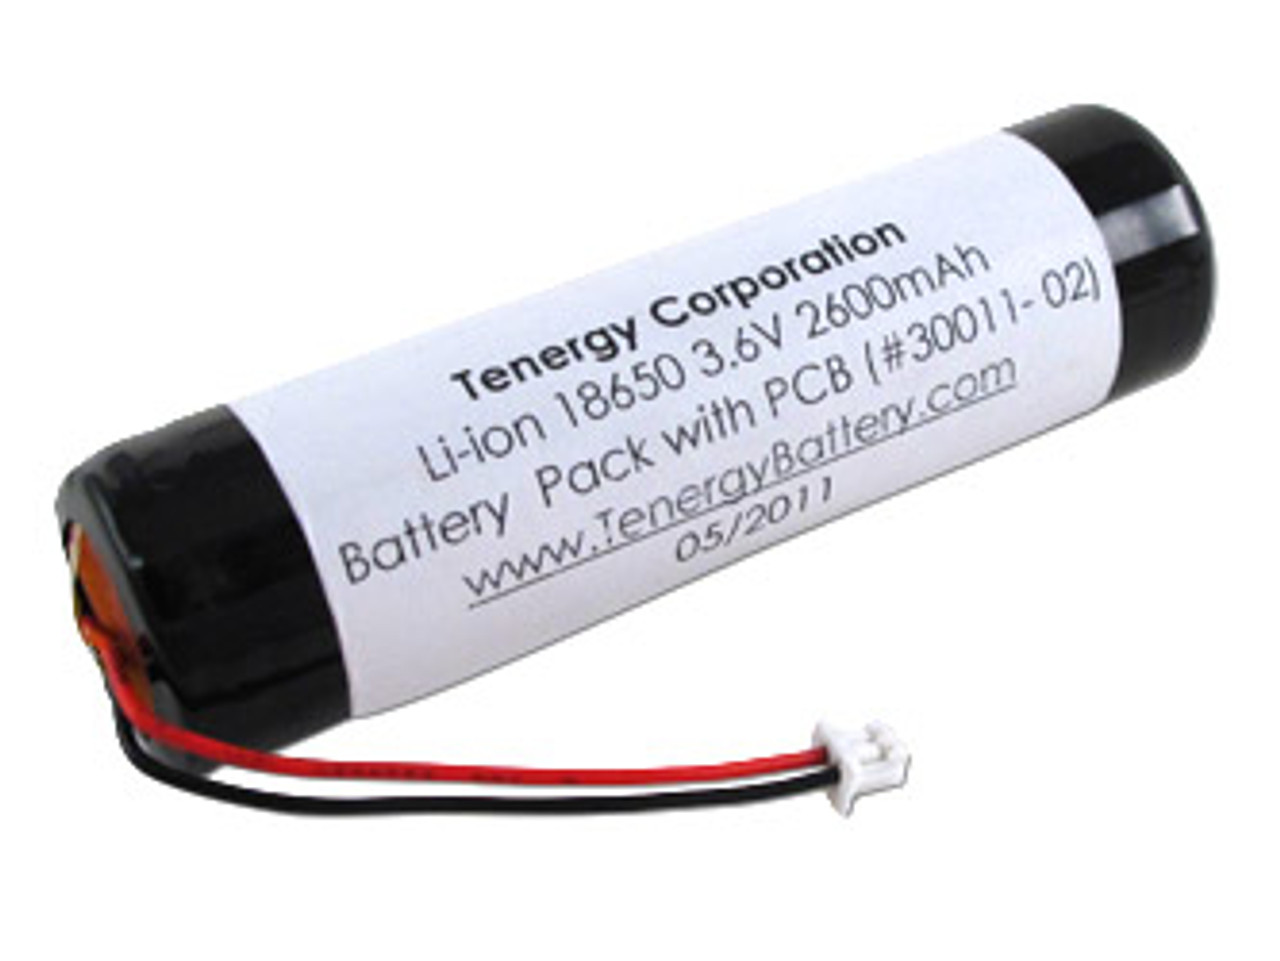 AT: Tenergy Li-ion 18650 3.7V 2600mAh Rechargeable Battery Pack w/ PCB (1S1P, 9.62Wh, 1.4A Rate, Molex Connector)